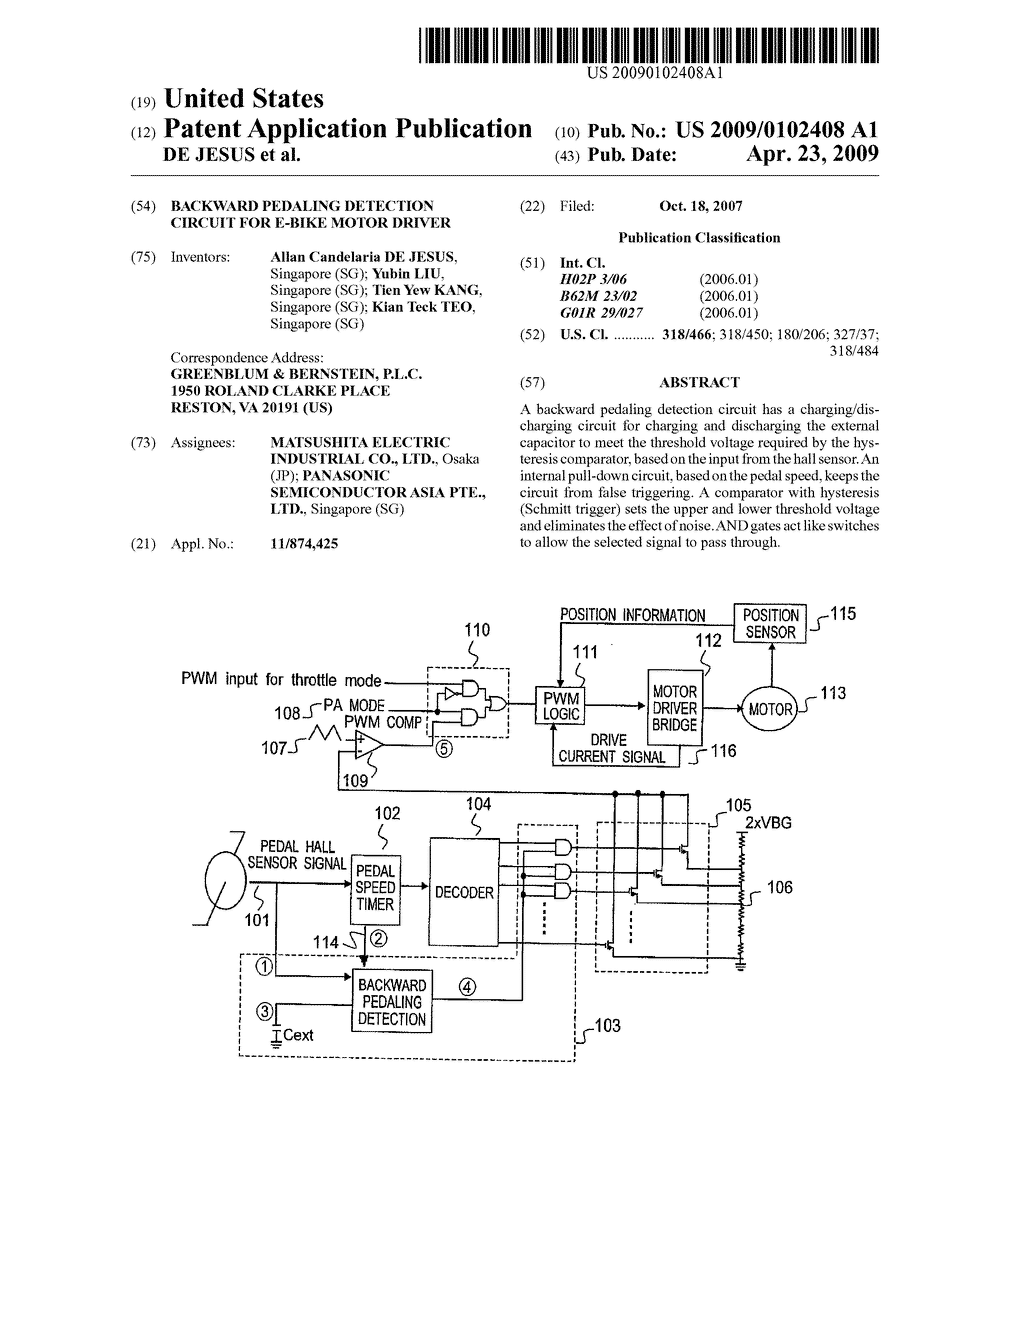 Backward Pedaling Detection Circuit For E Bike Motor Driver Diagram Of Electric Schematic And Image 01